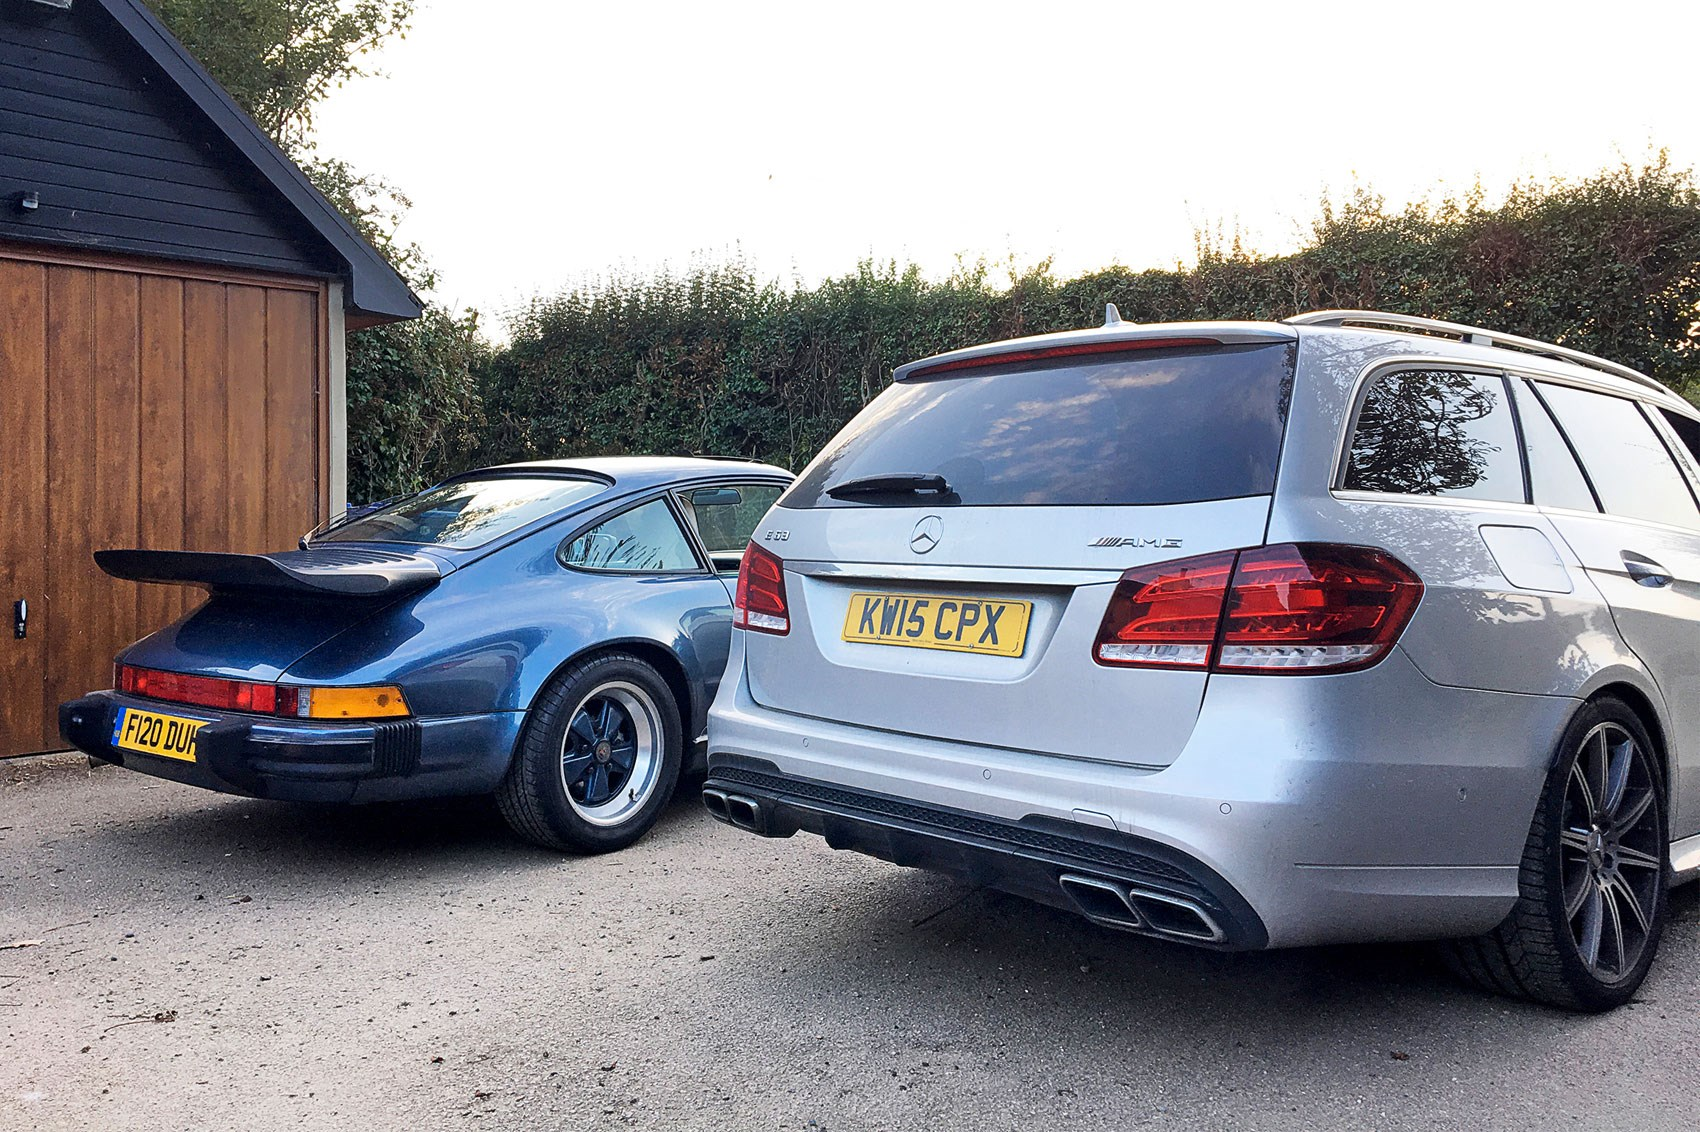 mercedes-benz e63 amg estate: used long-term test review (2015)